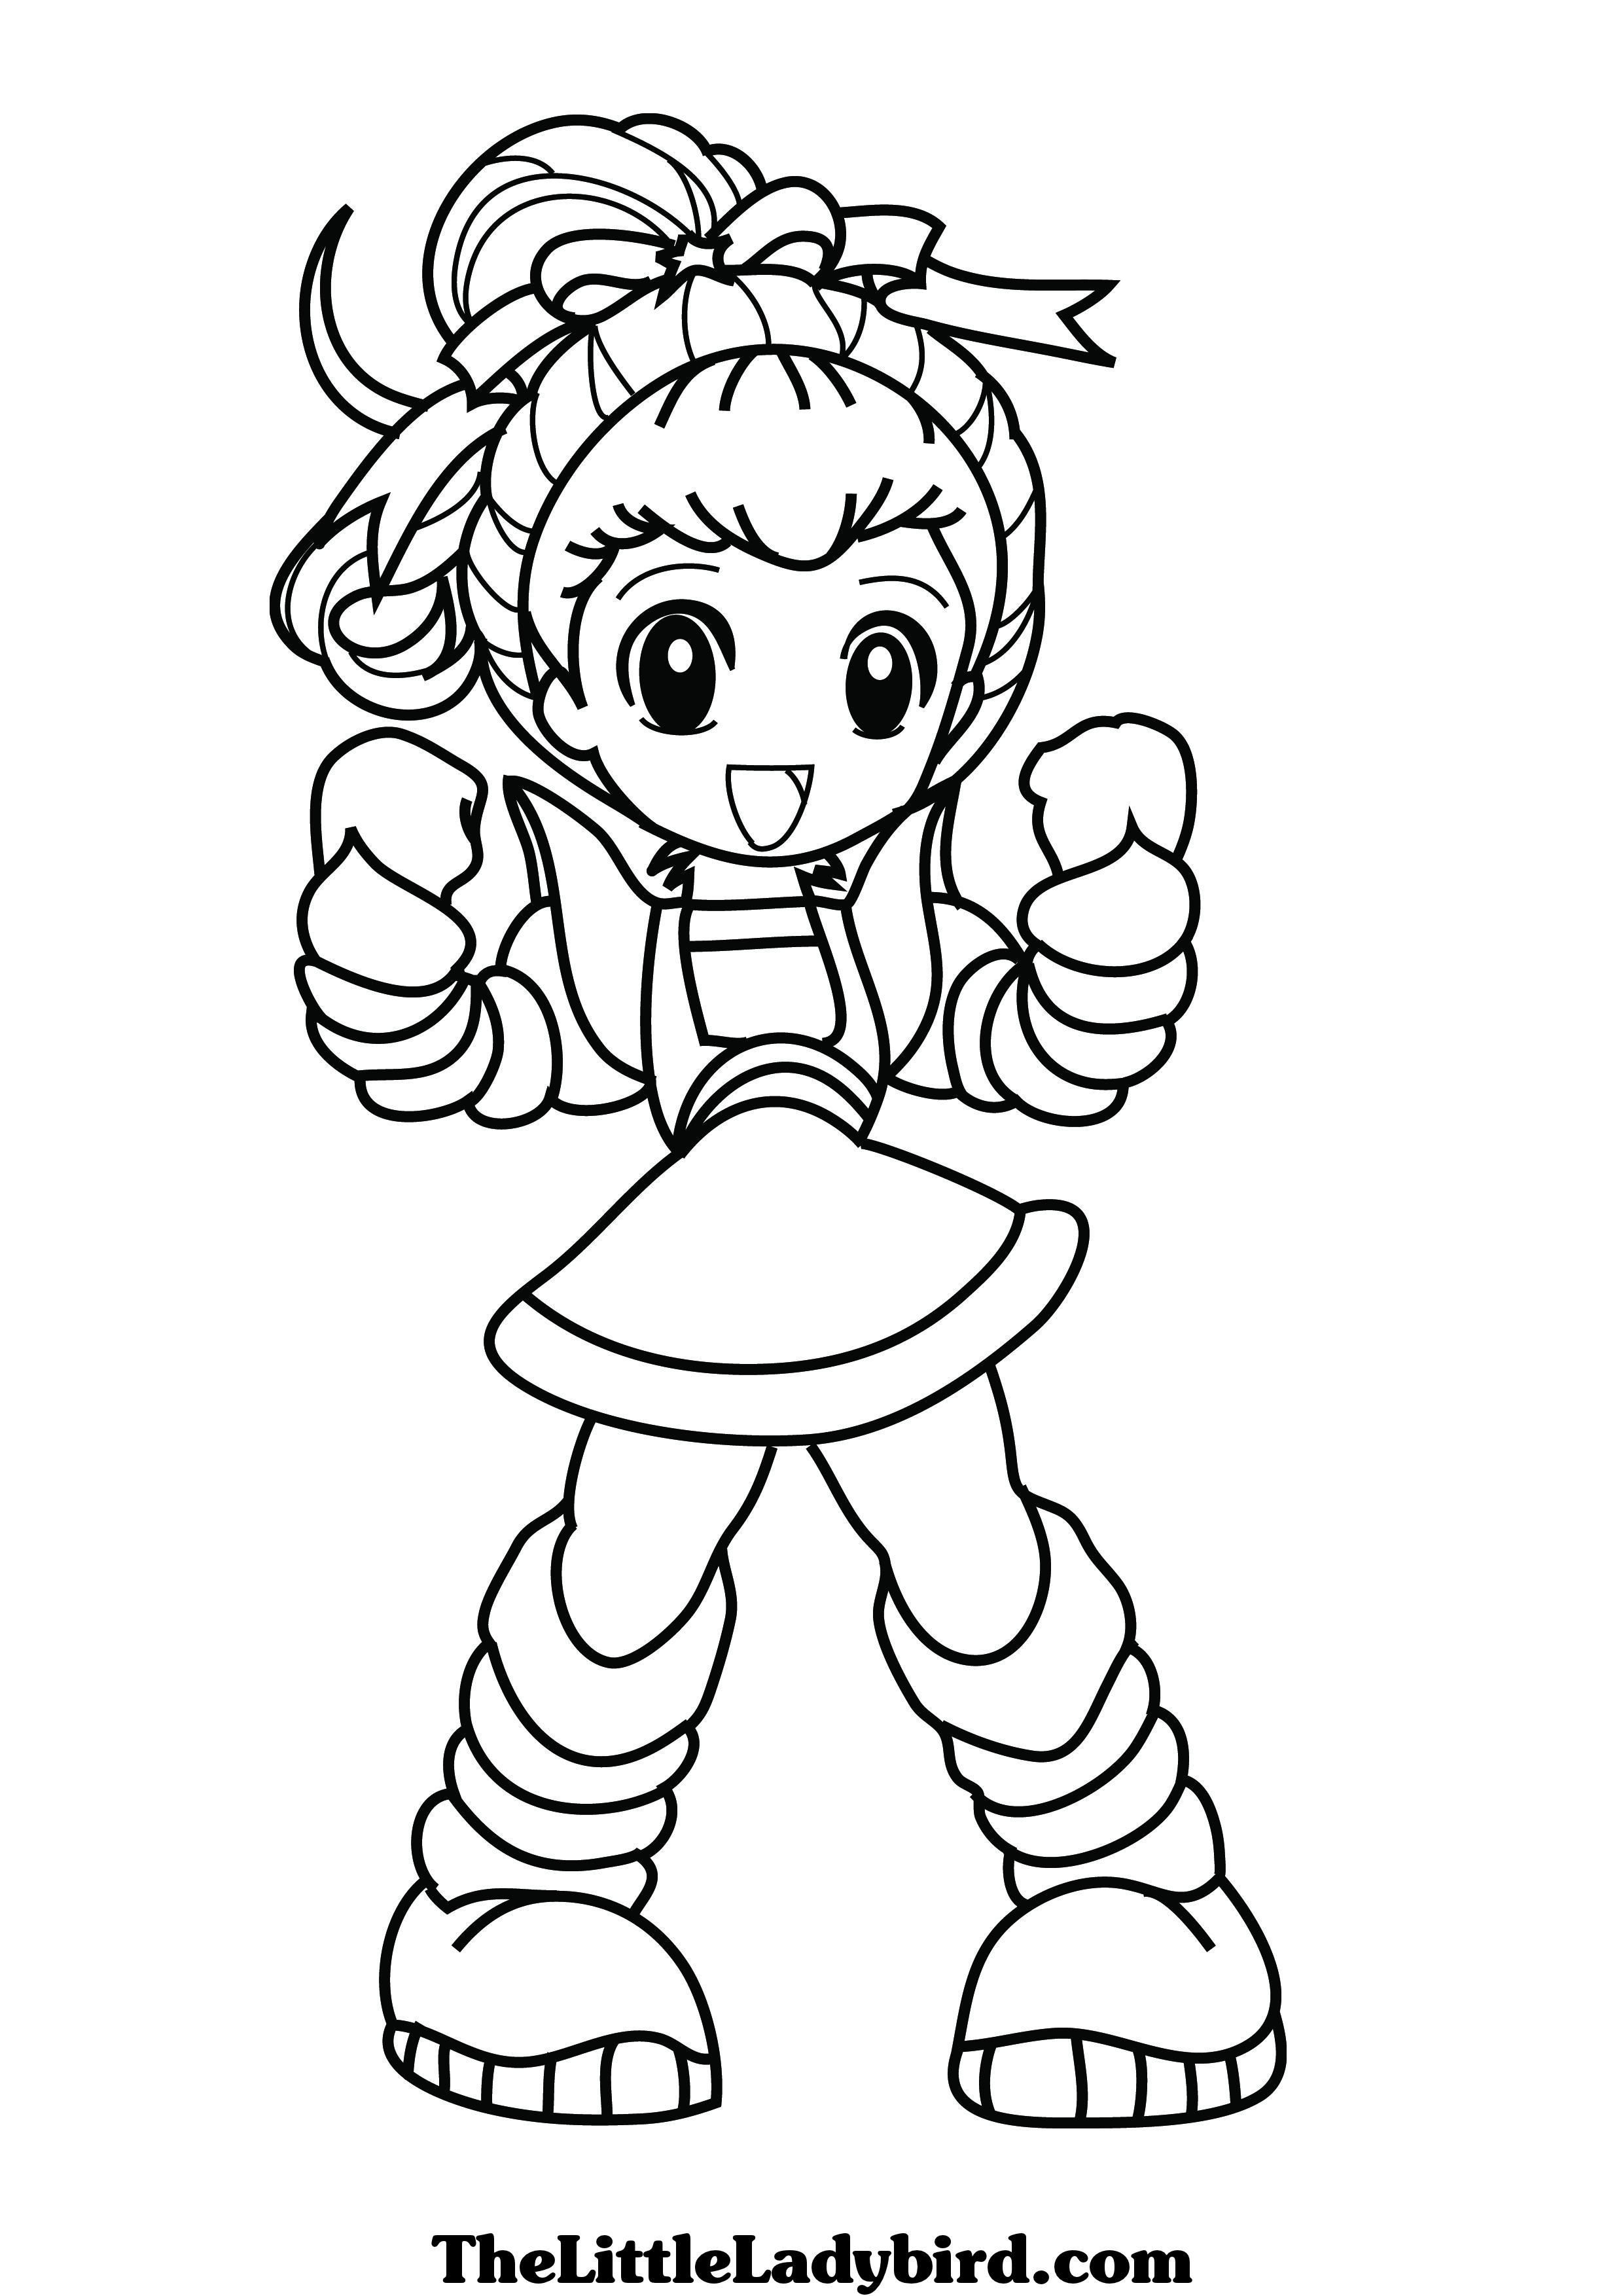 Rainbow Brite Coloring Pages At GetDrawings